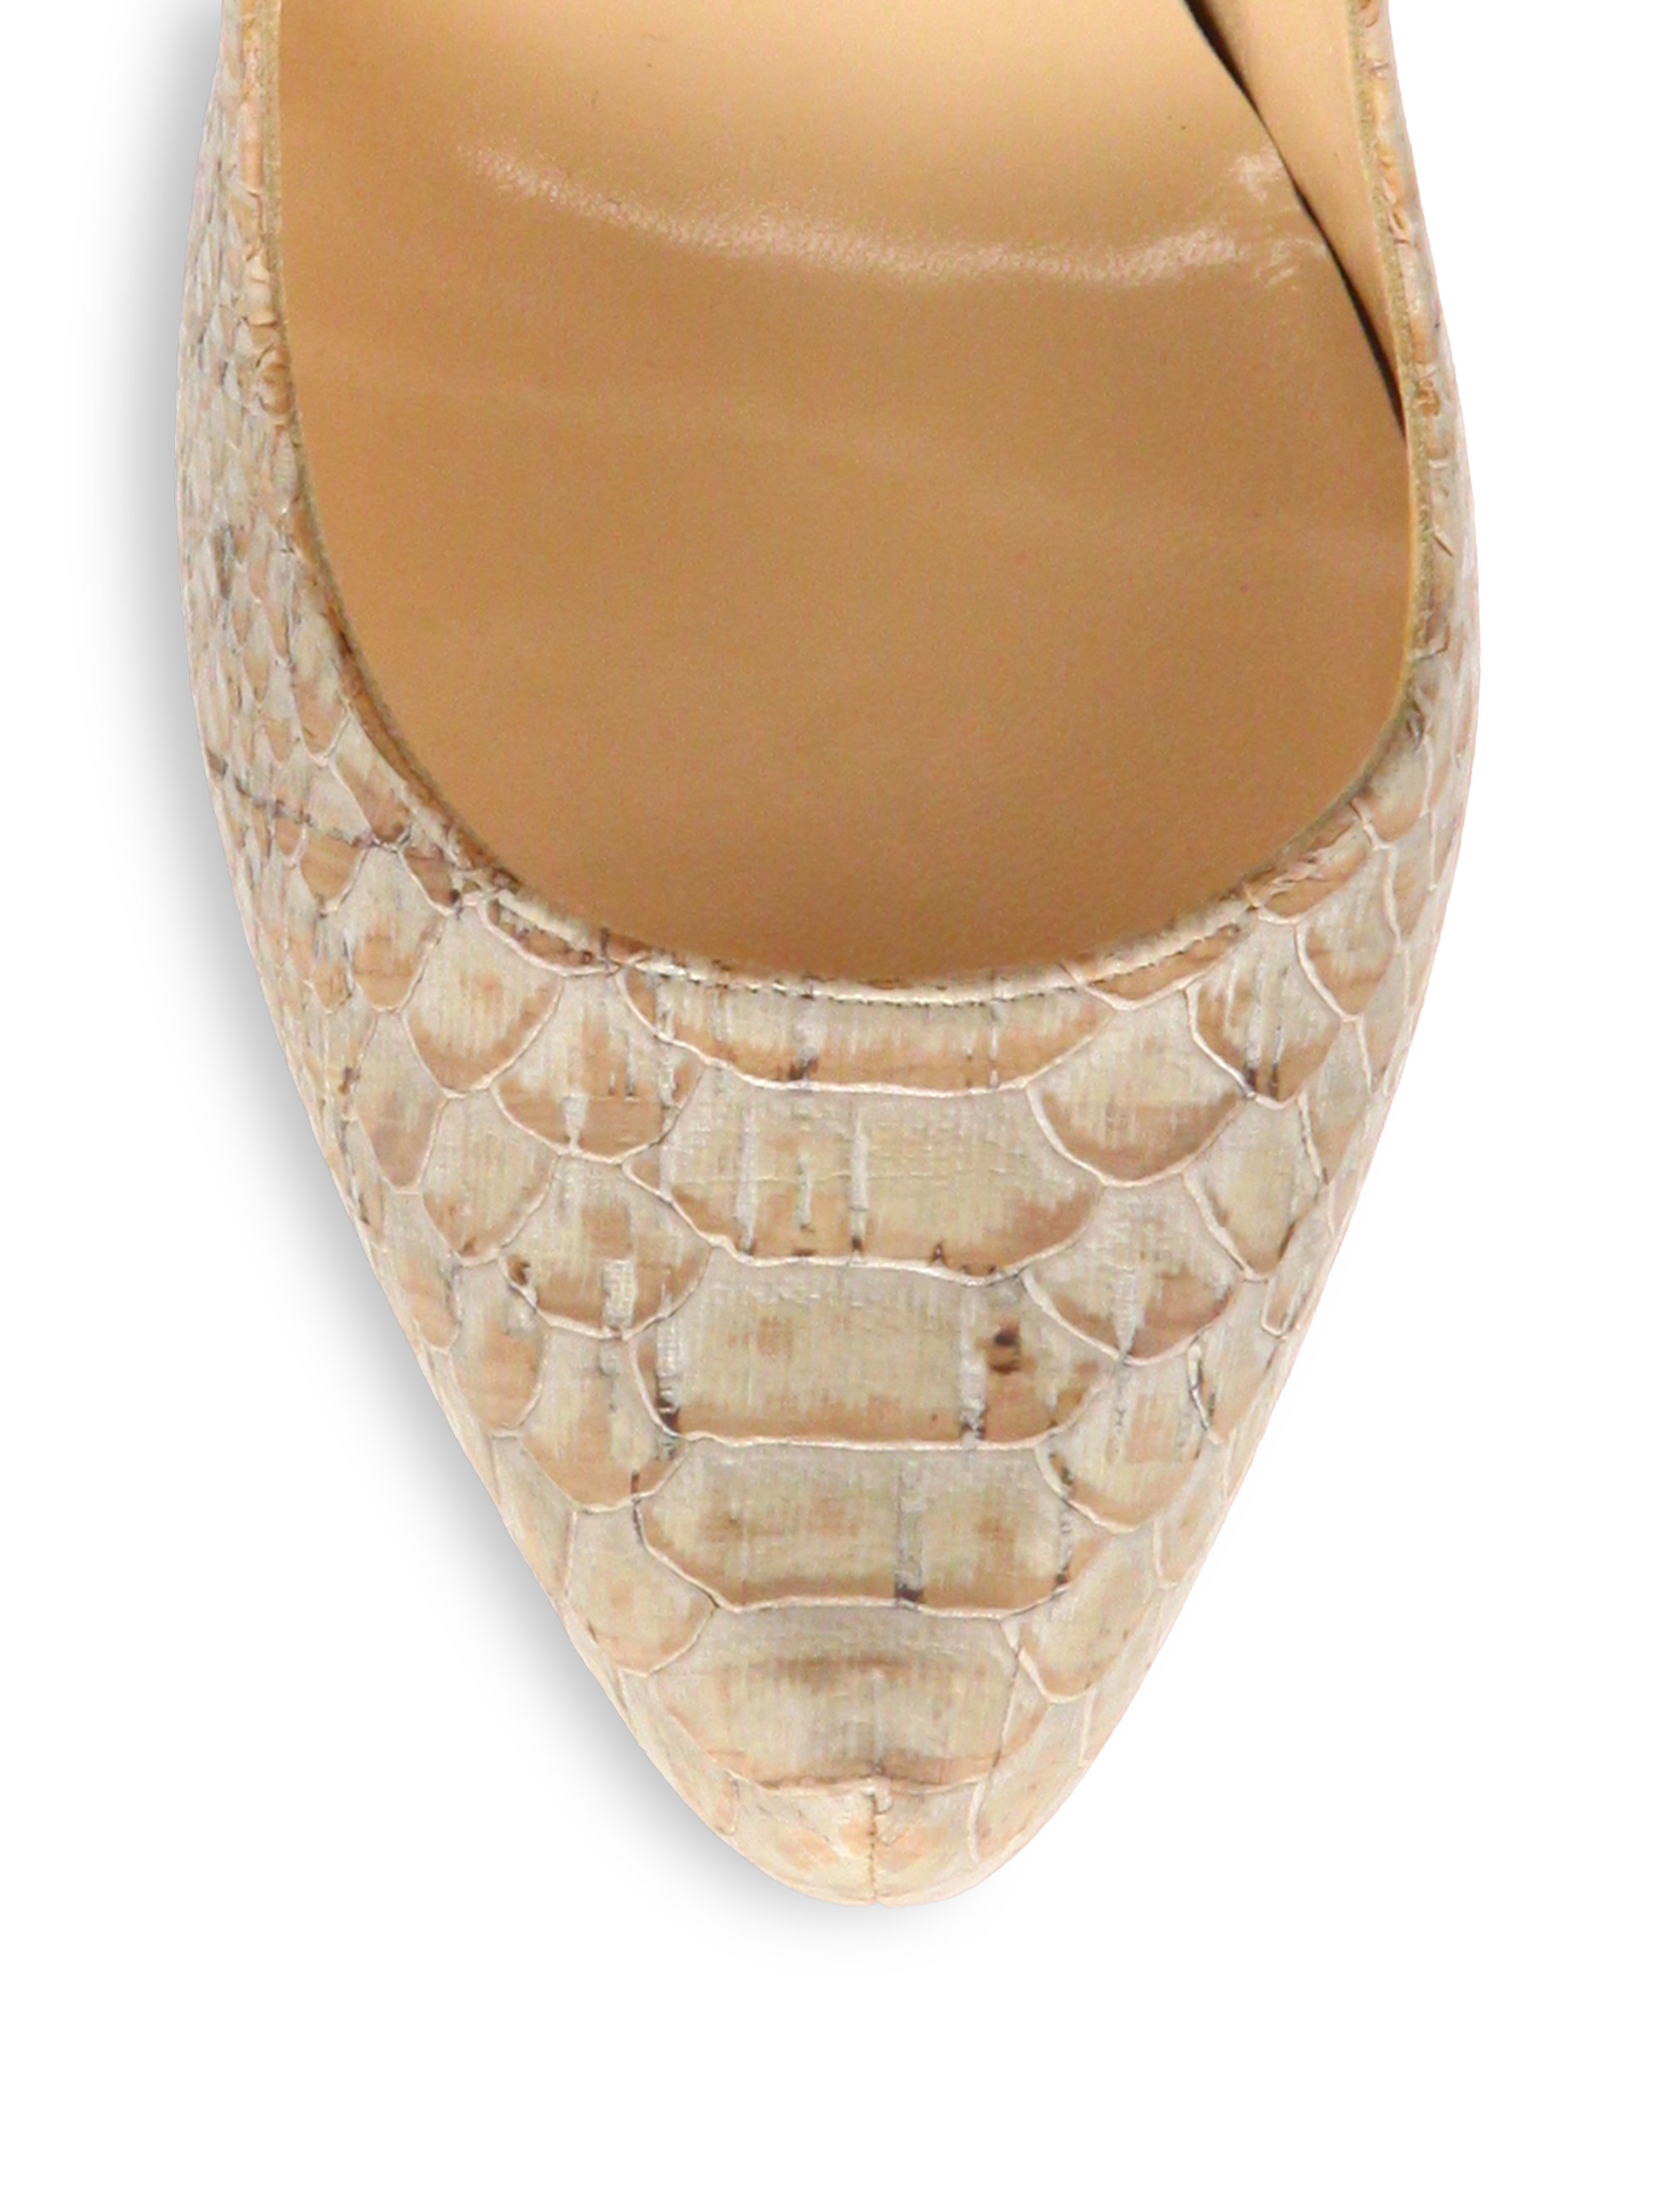 christian-louboutin--daffodile-snake-embossed-cork-platform-pumps-product-1-16415579-0-219148932-normal.jpeg